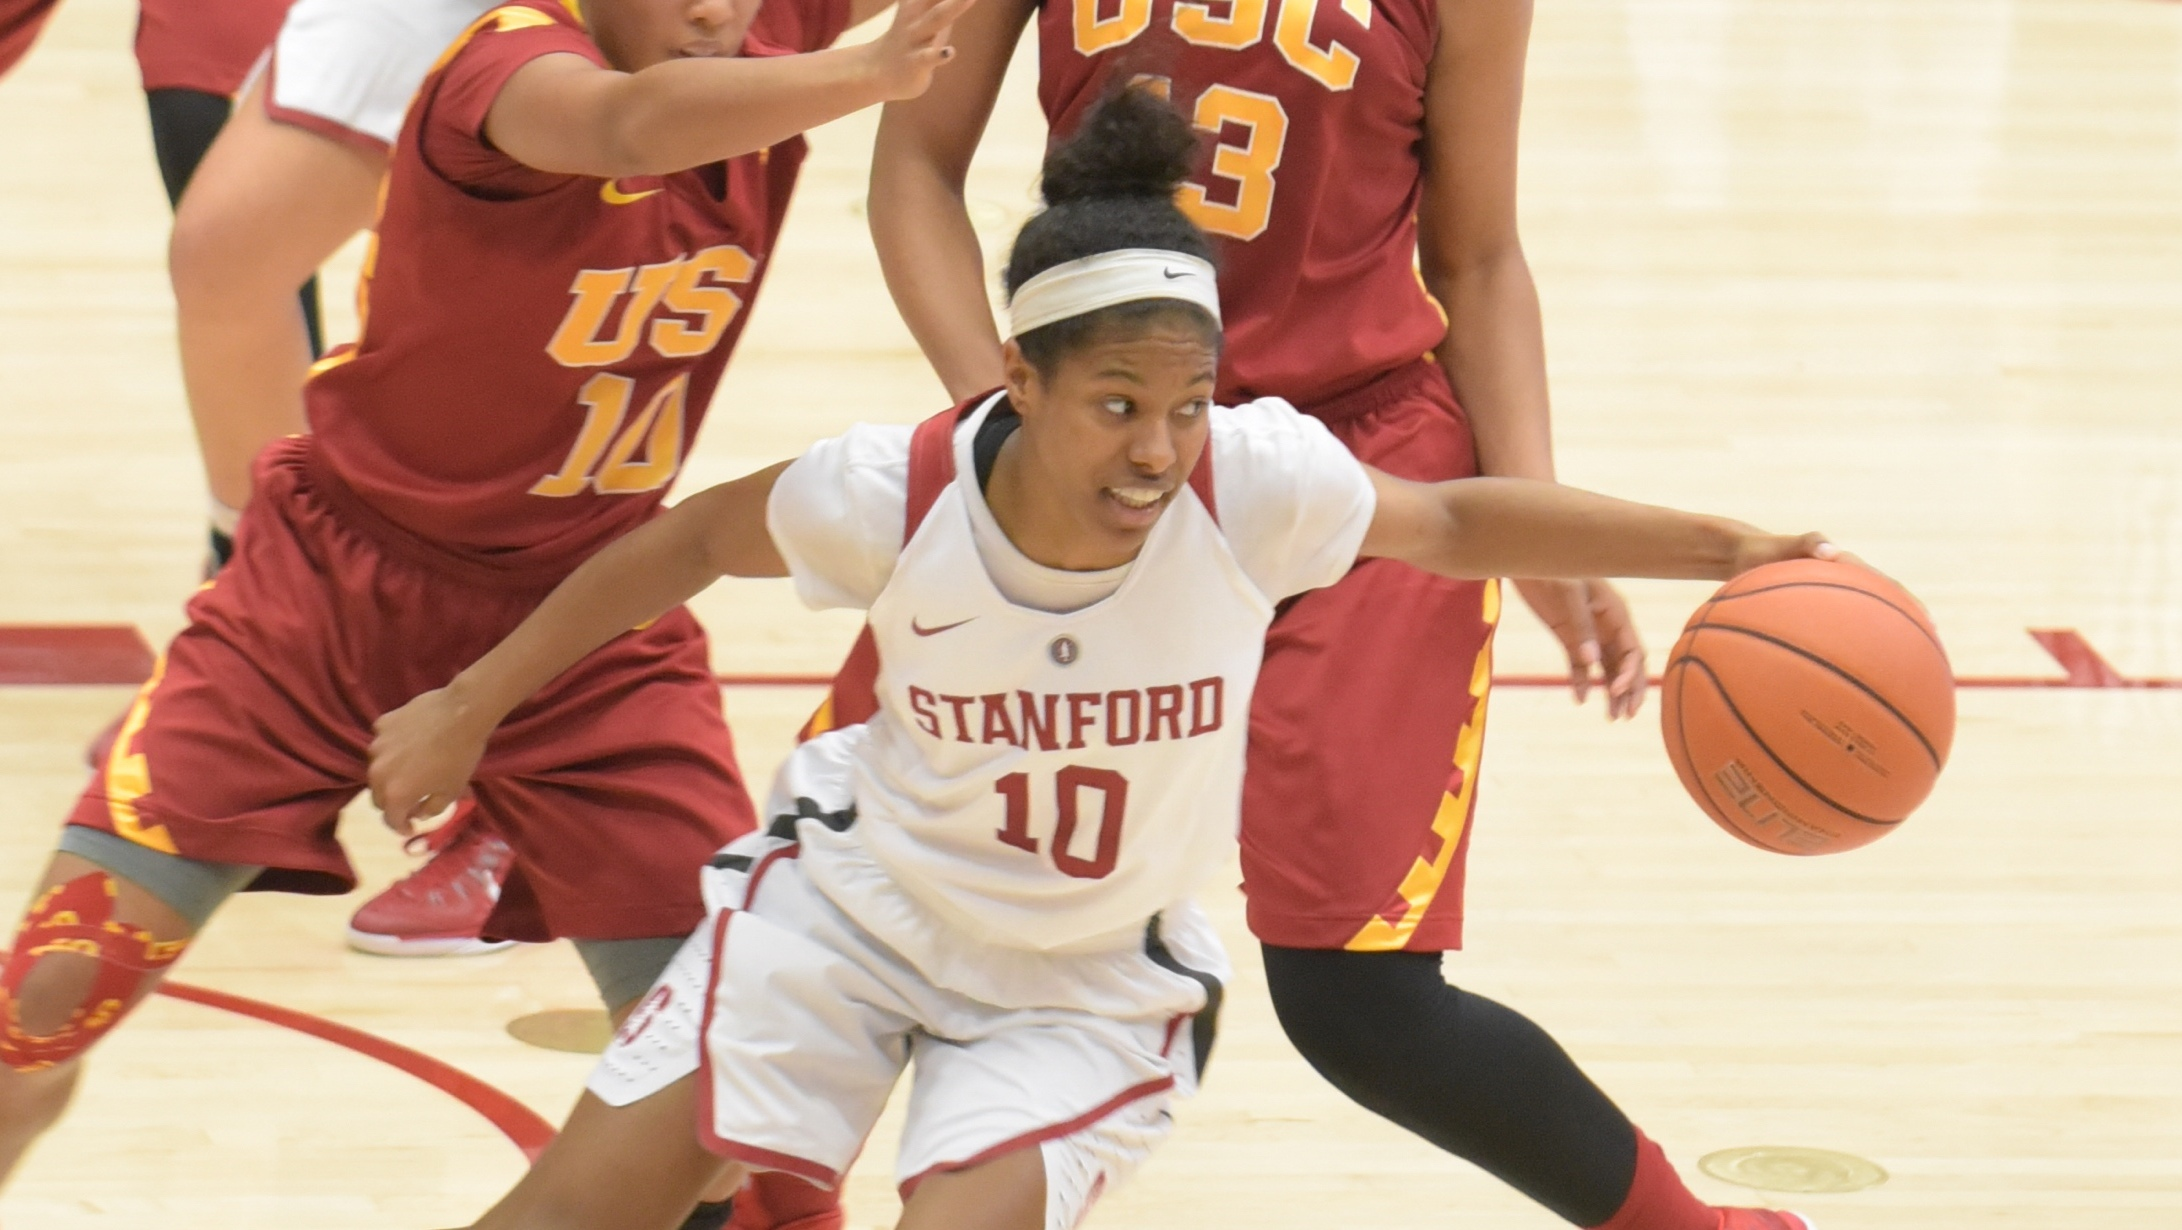 Stanford rebounds from back-to-back losses with a new starting lineup to defeat USC, 79-60